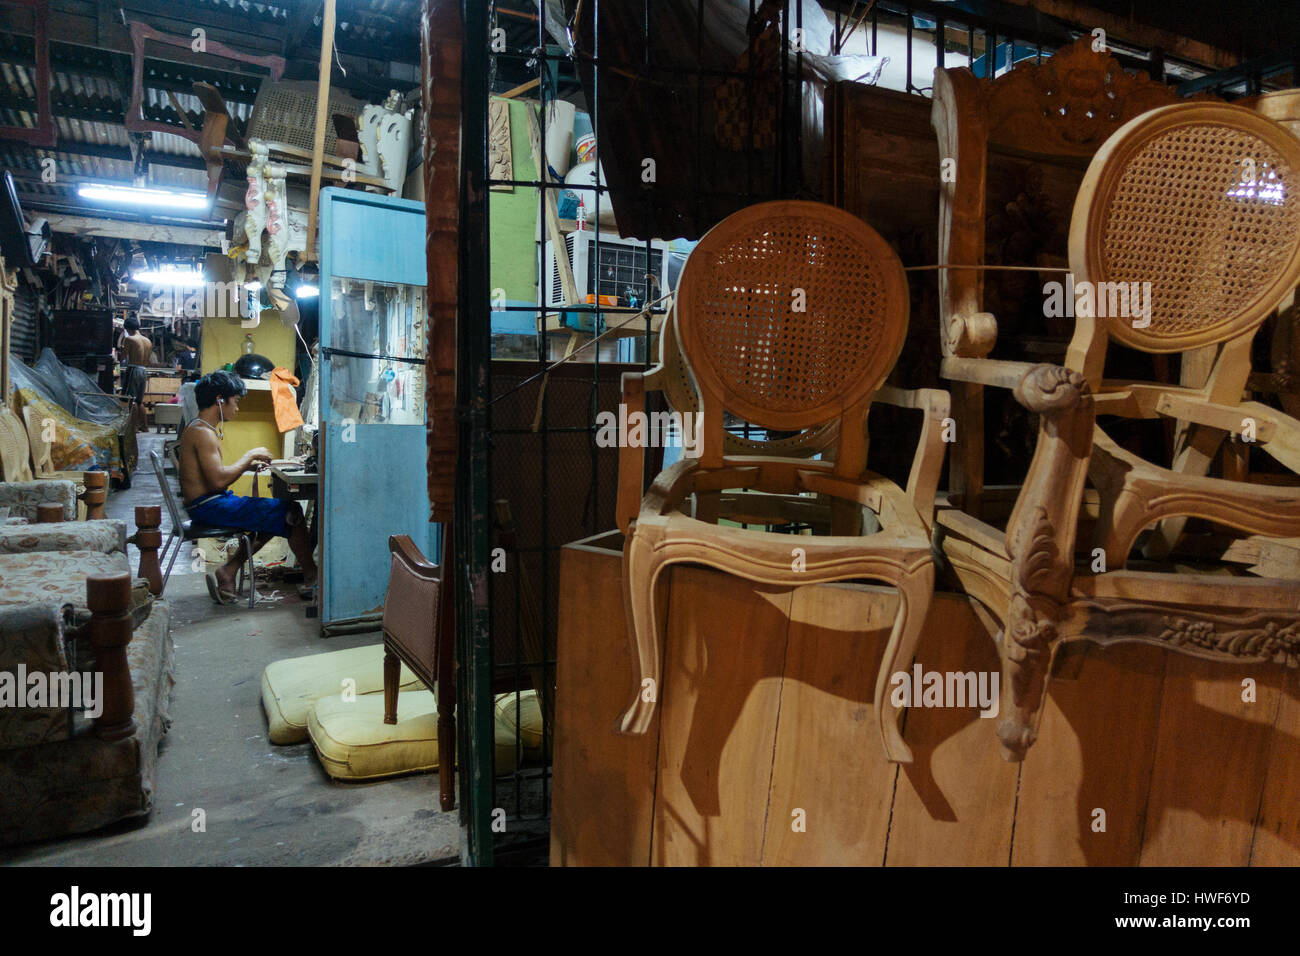 Manila,Philippines   Jan 13, 2017: Young Filipino Working At The Evening In  A Furniture Shop In Quezon City, Manila, Philippines